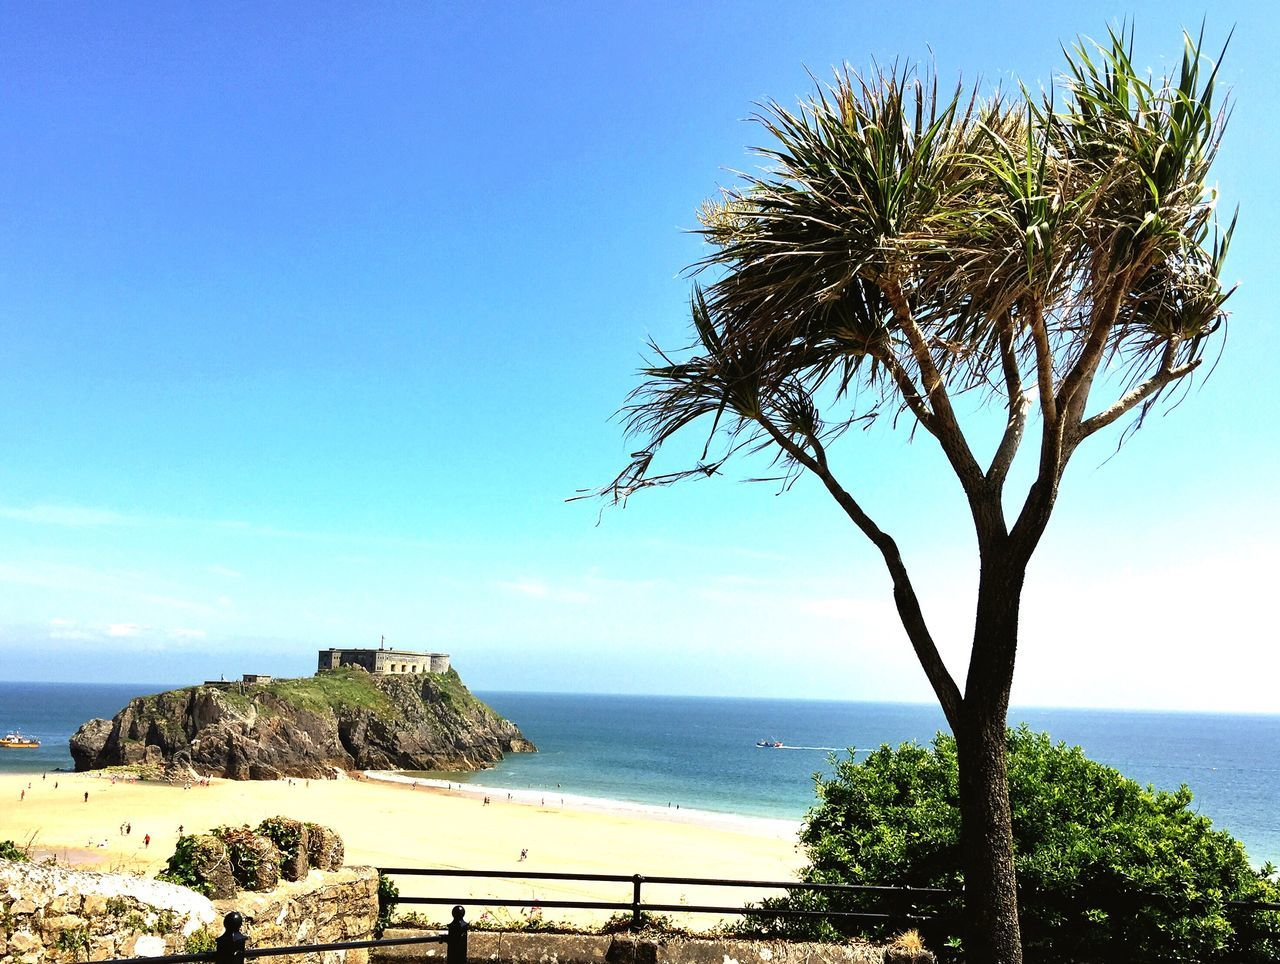 Beautiful Tenby in Pembrokeshire, UK Relaxing Enjoying Life Beauty In Nature Summertime Pembrokeshire The Essence Of Summer IPhoneography Looking Out To Sea. Ocean View Pembrokeshire Coast Tropical Sea And Sky The Great Outdoors - 2017 EyeEm Awards